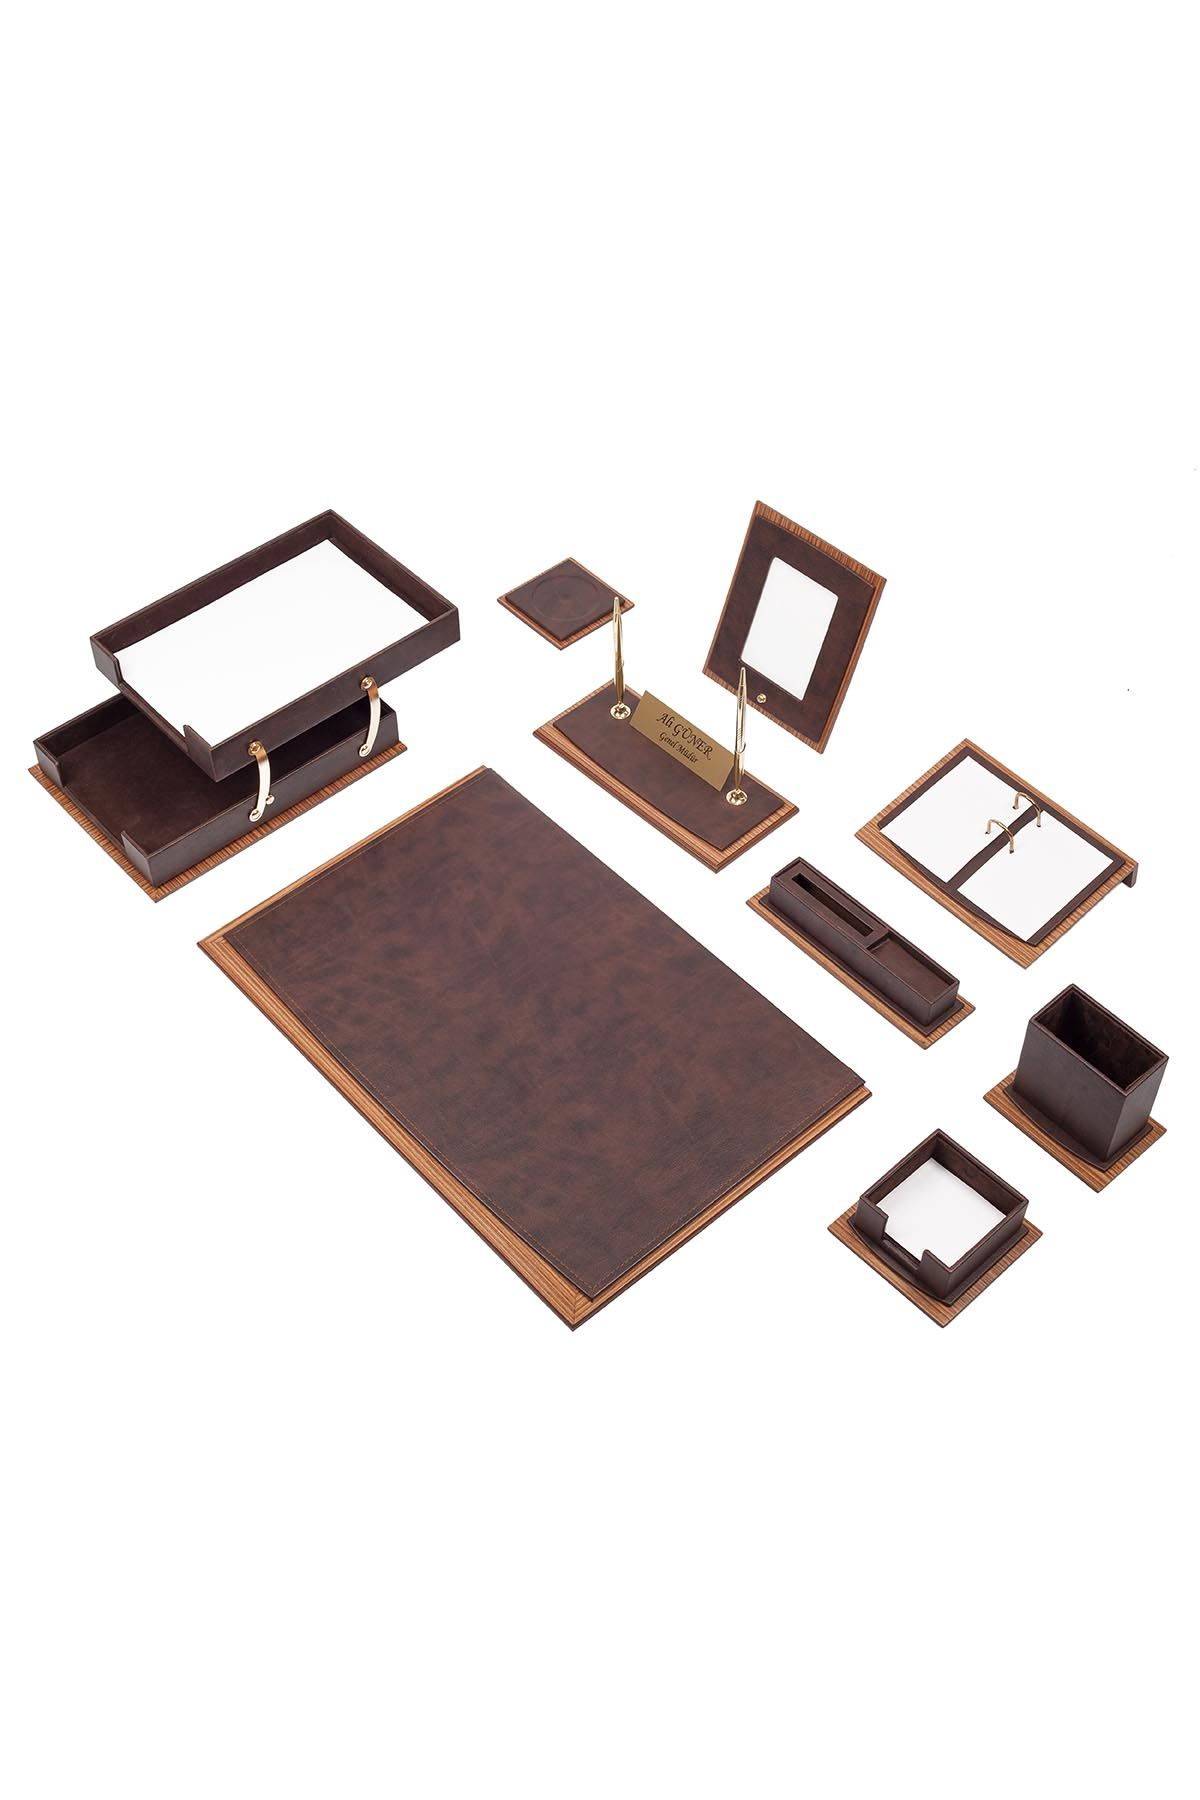 Star Lux Leather Desk Set Brown 11 Accessories